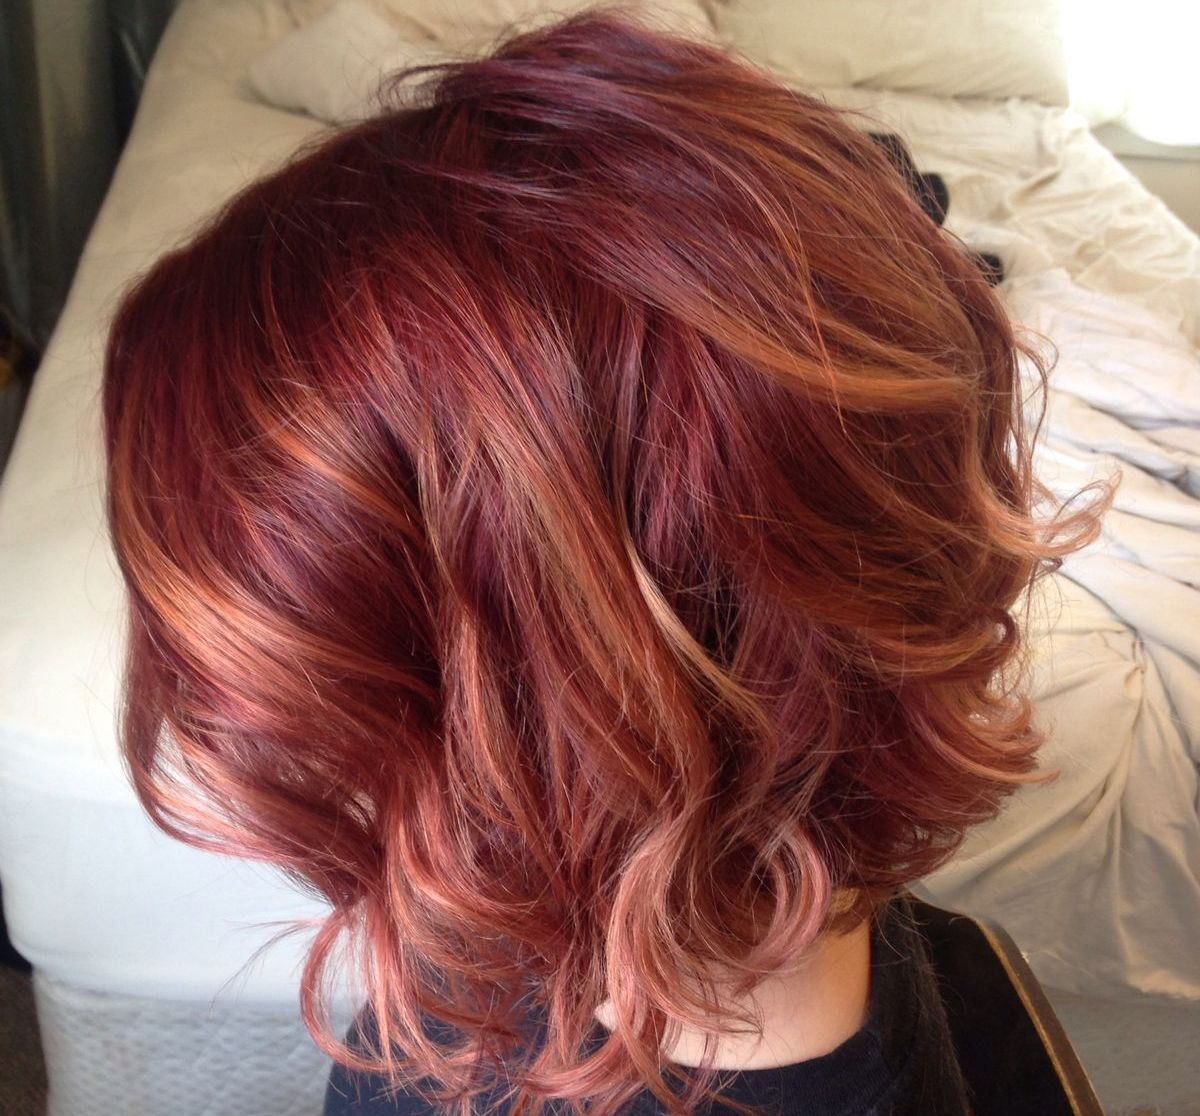 Pin By Annora On Hair Color Inspiration Pinterest Caramel Hair